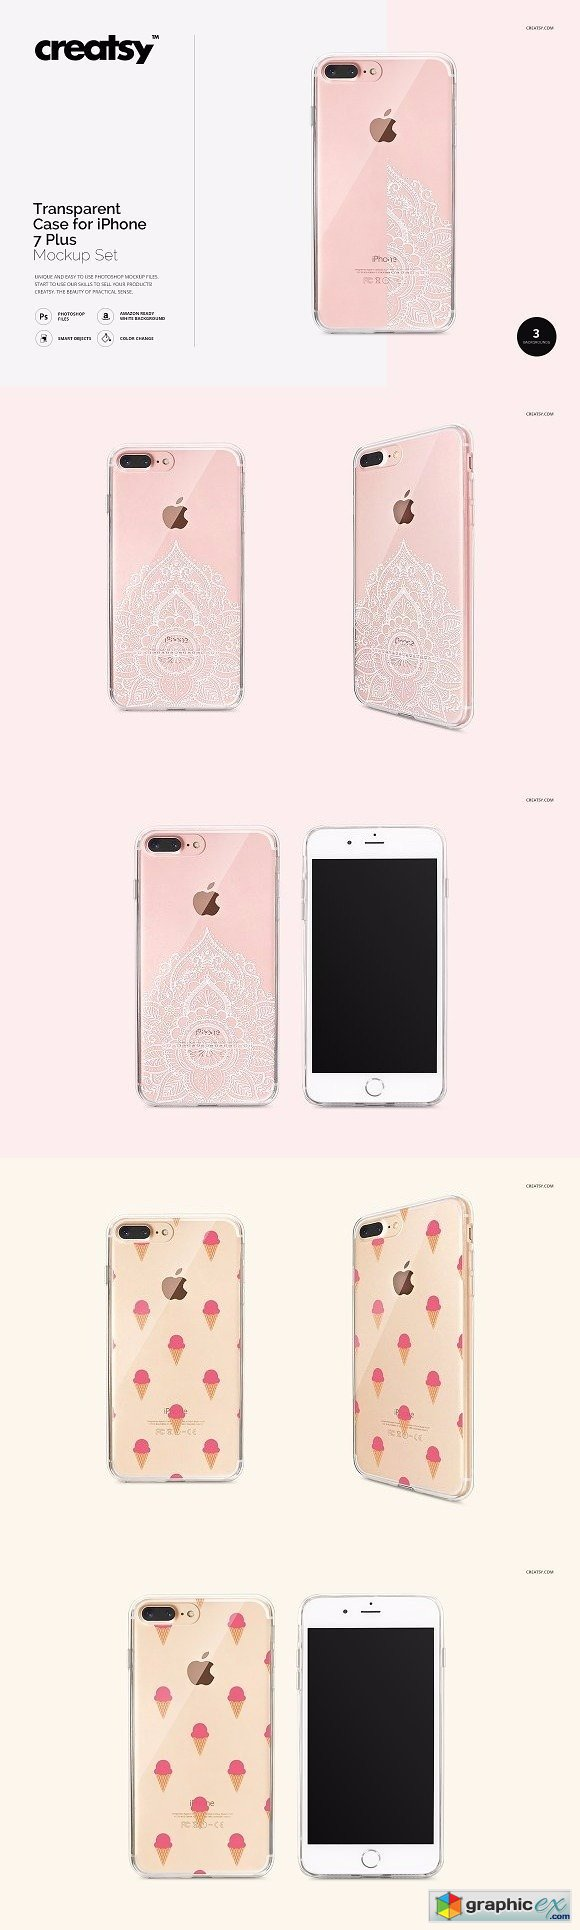 transparent iphone case mockup set  u00bb free download vector